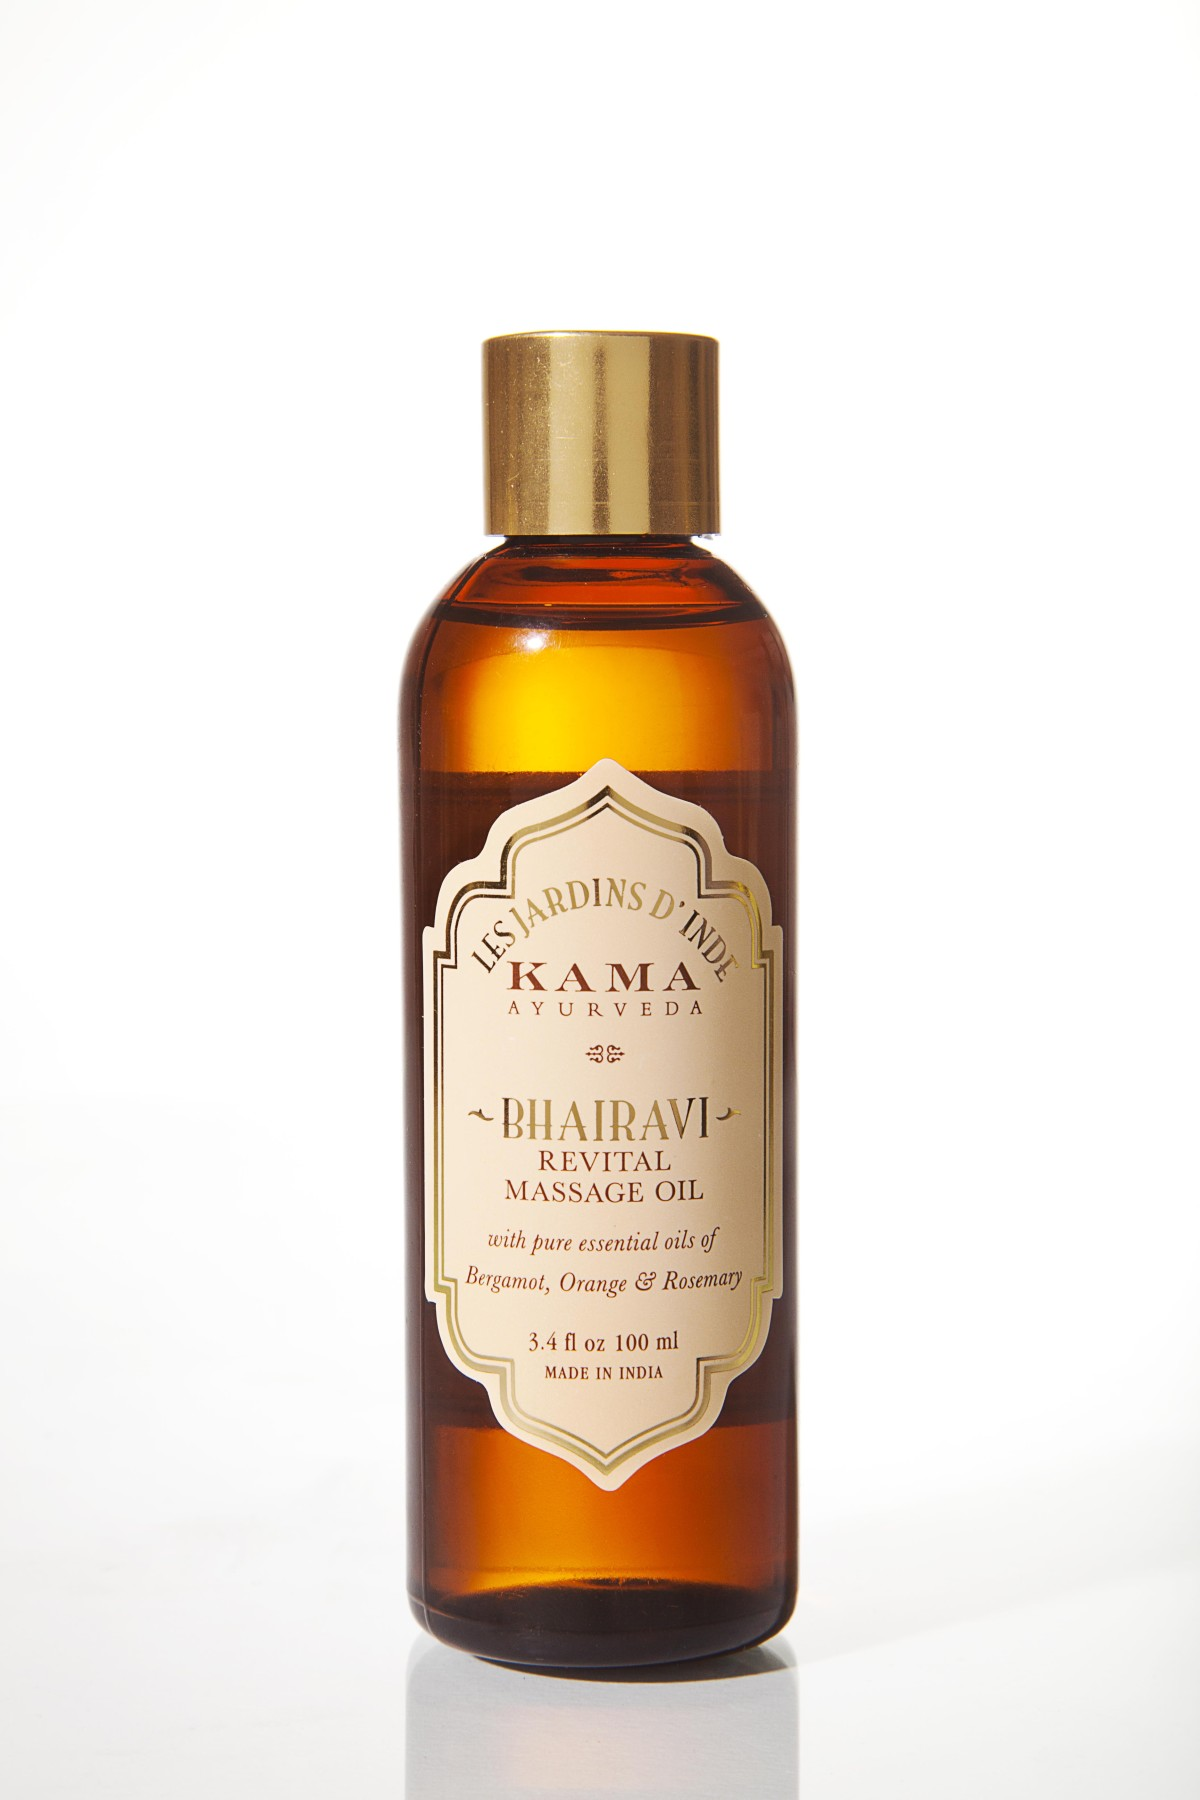 Bhairavi Revital Massage Oil